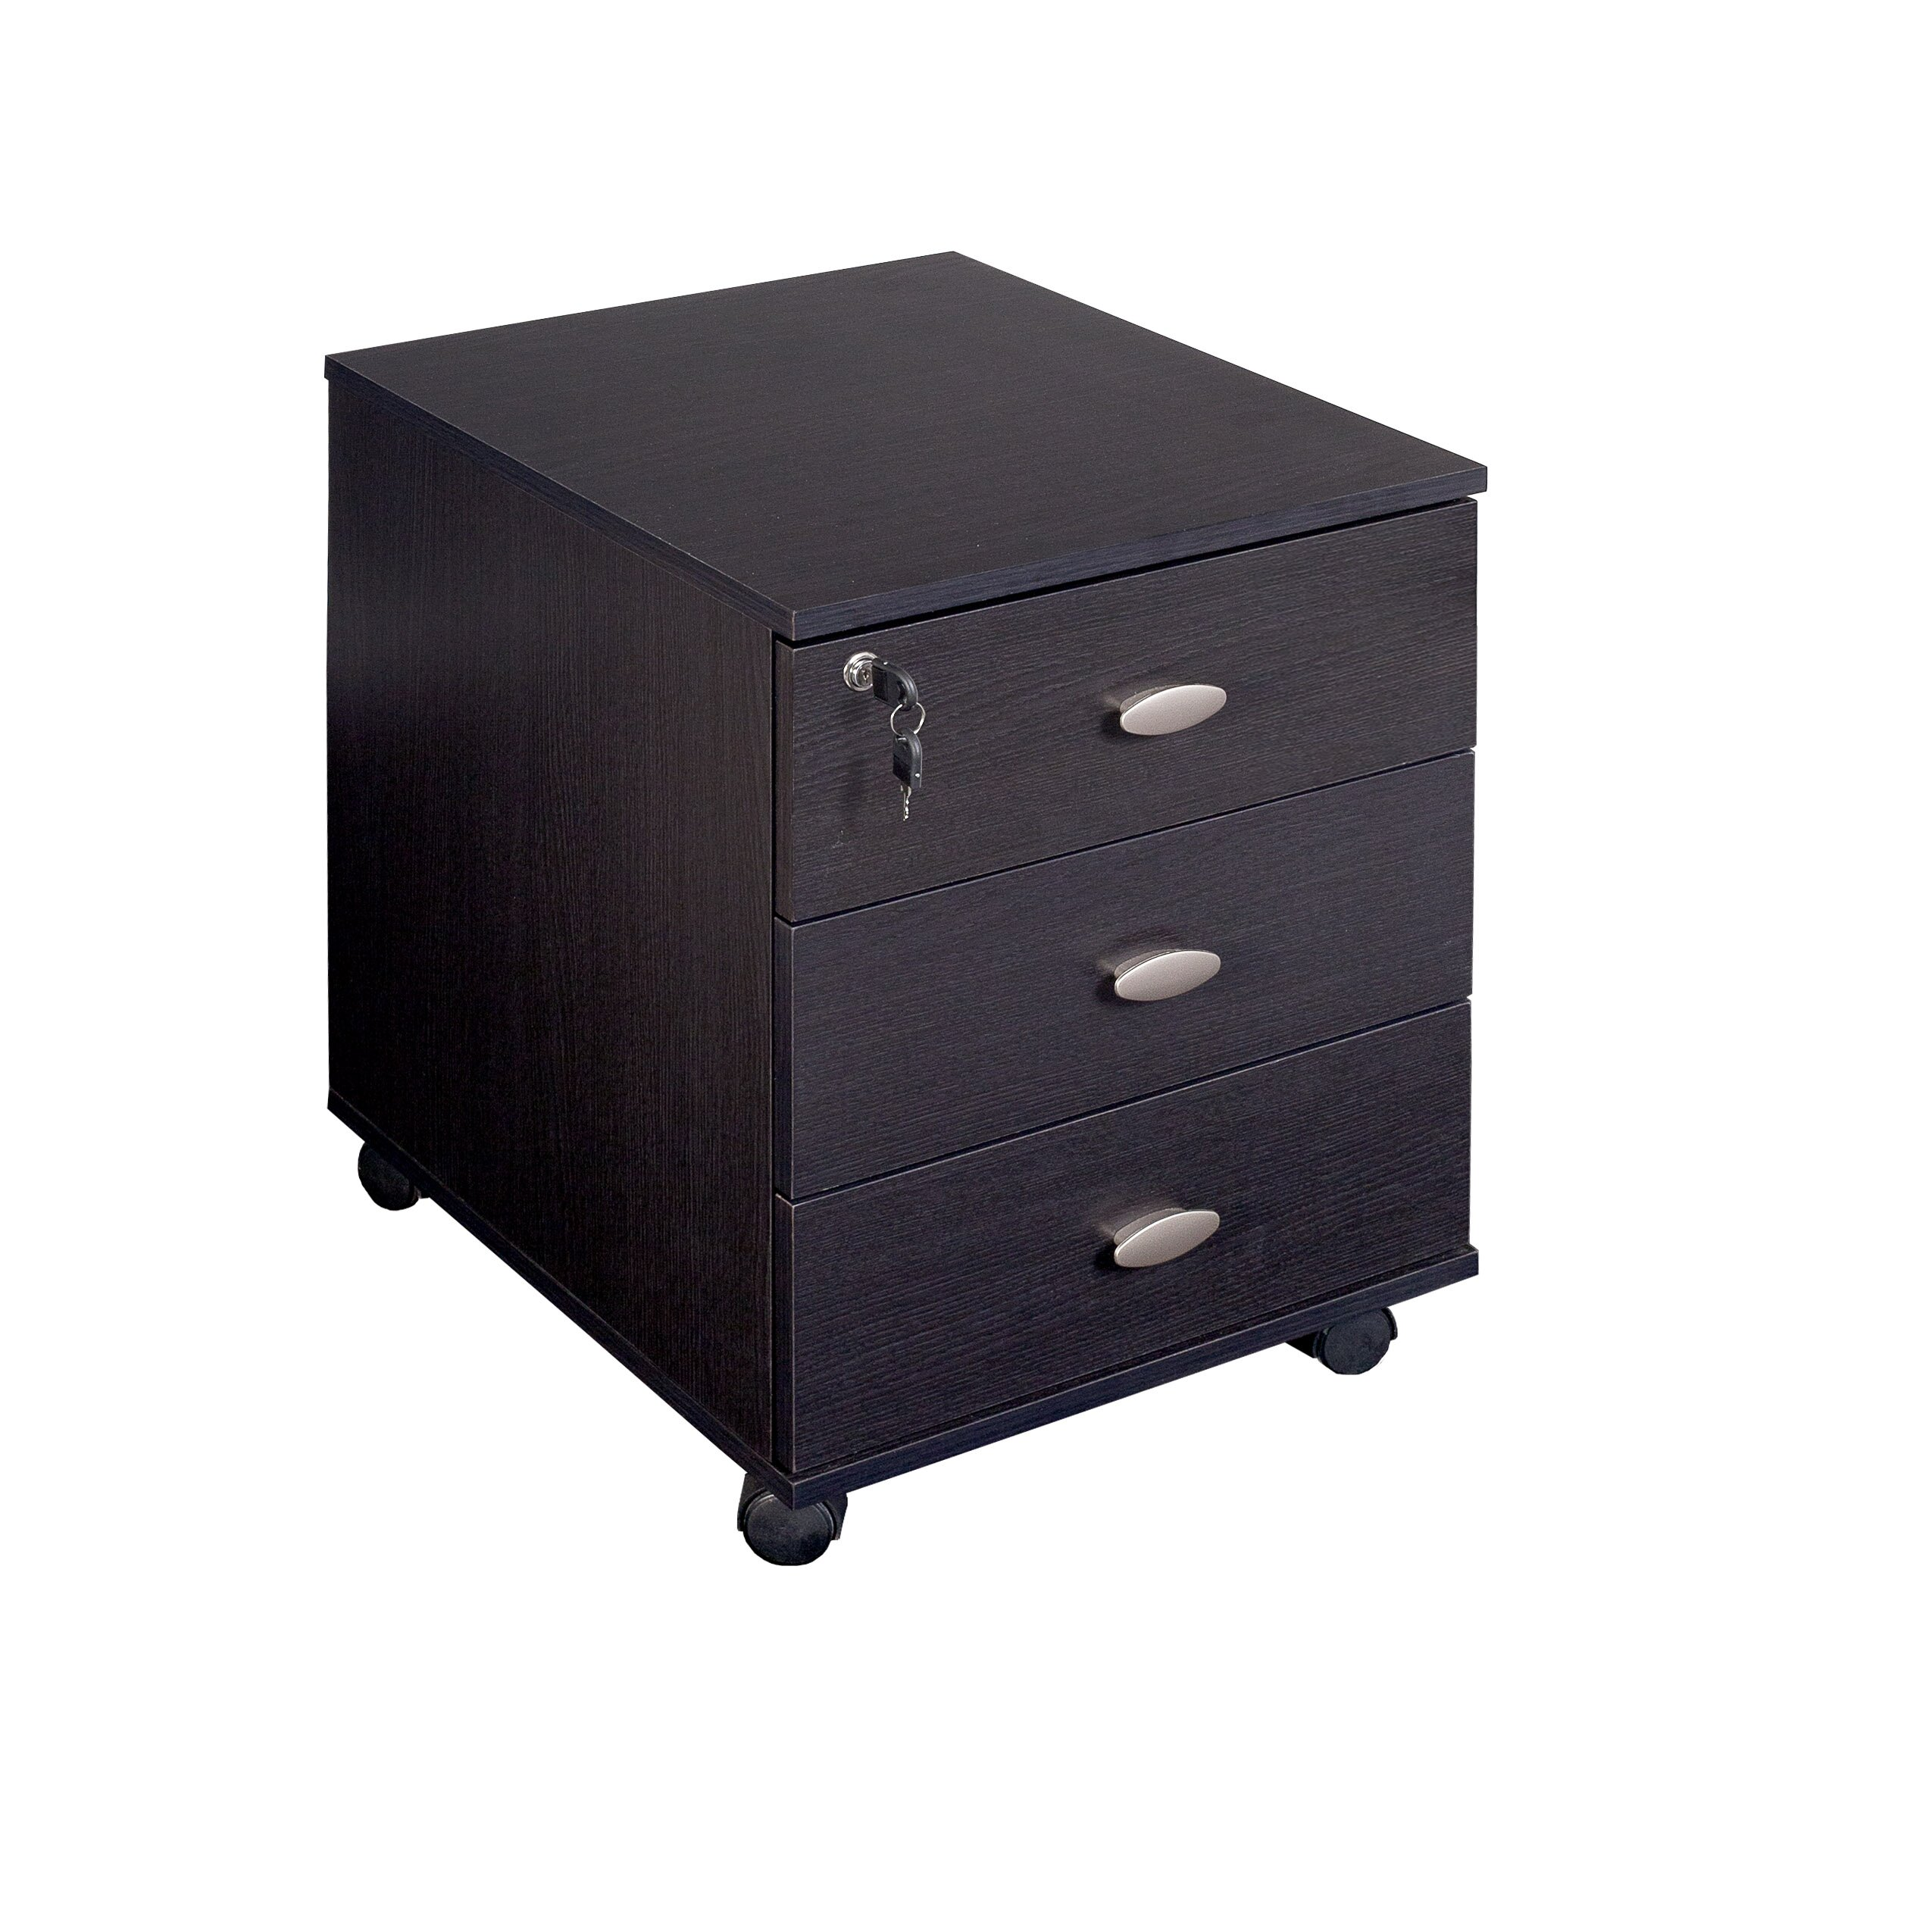 Corliving Folio Storage Cabinet Reviews Wayfair